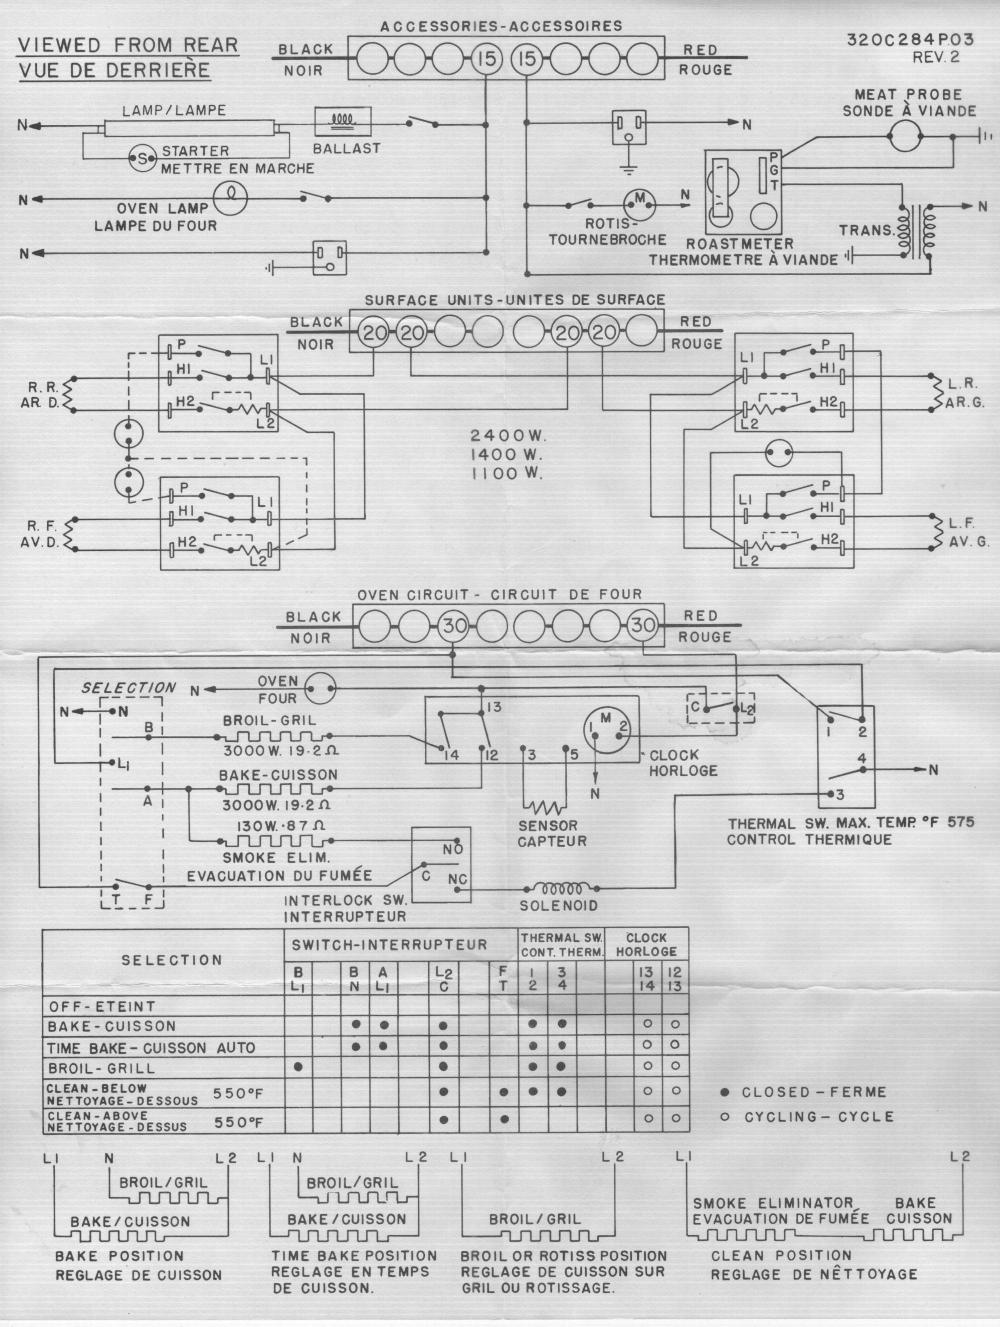 medium resolution of element switch wb21x5243 sample wire diagram from an older moffat canadian